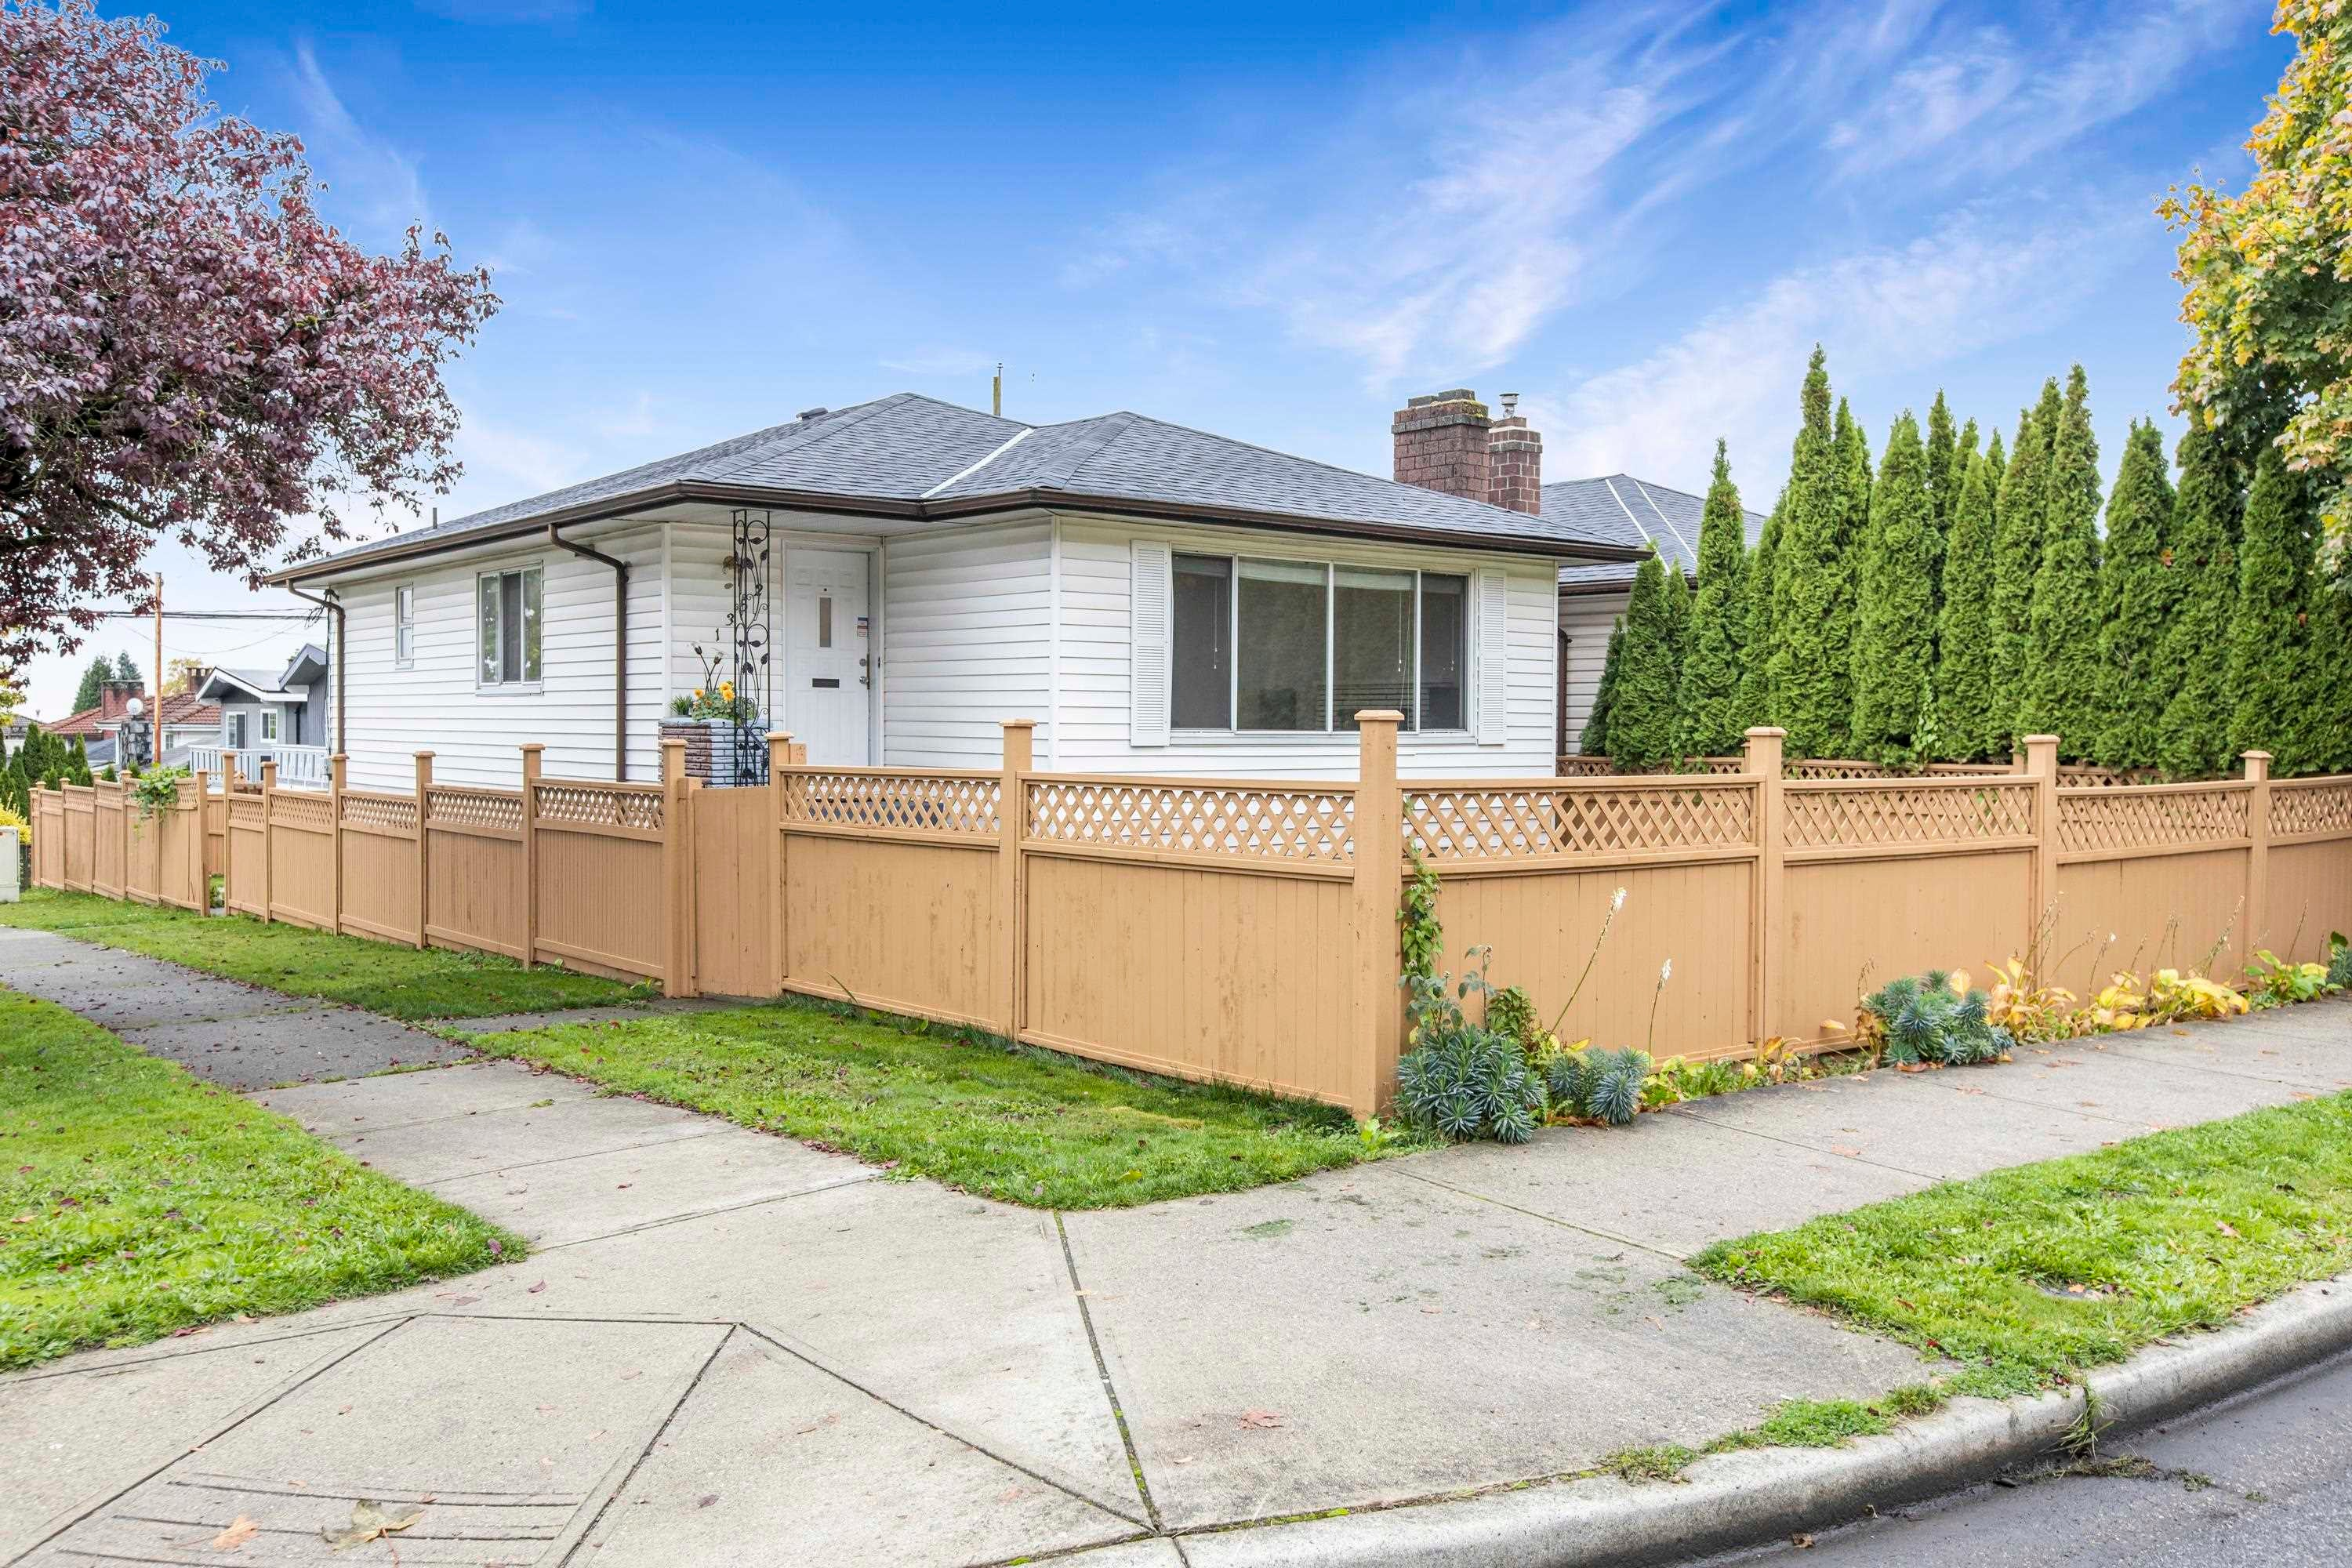 1352 E 57TH AVENUE - South Vancouver House/Single Family for sale, 4 Bedrooms (R2625705) - #1